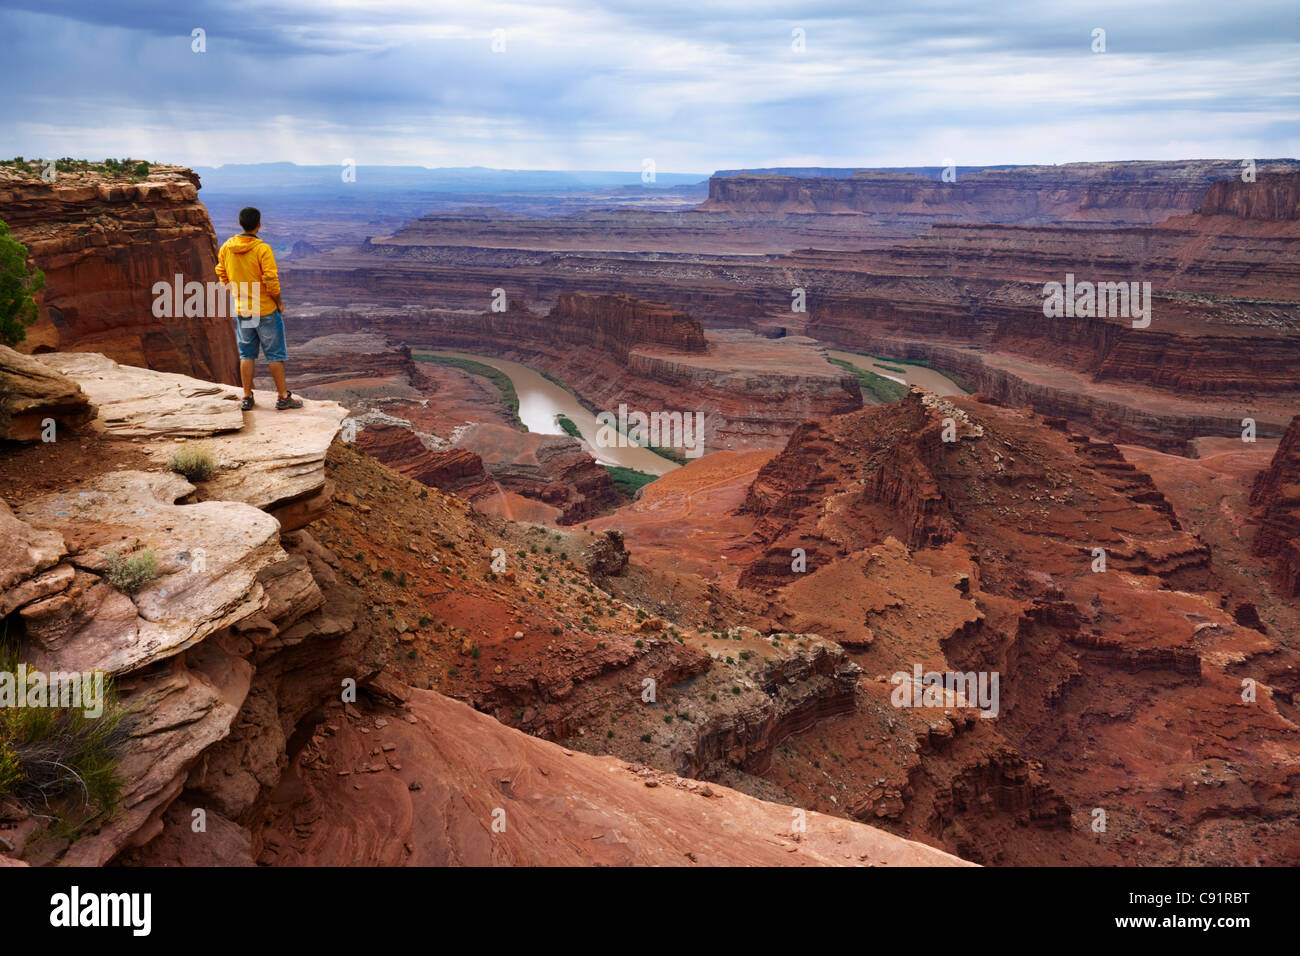 Tourist at Dead Horse Point watching the Colorado River, Dead Horse Point State Park Stock Photo